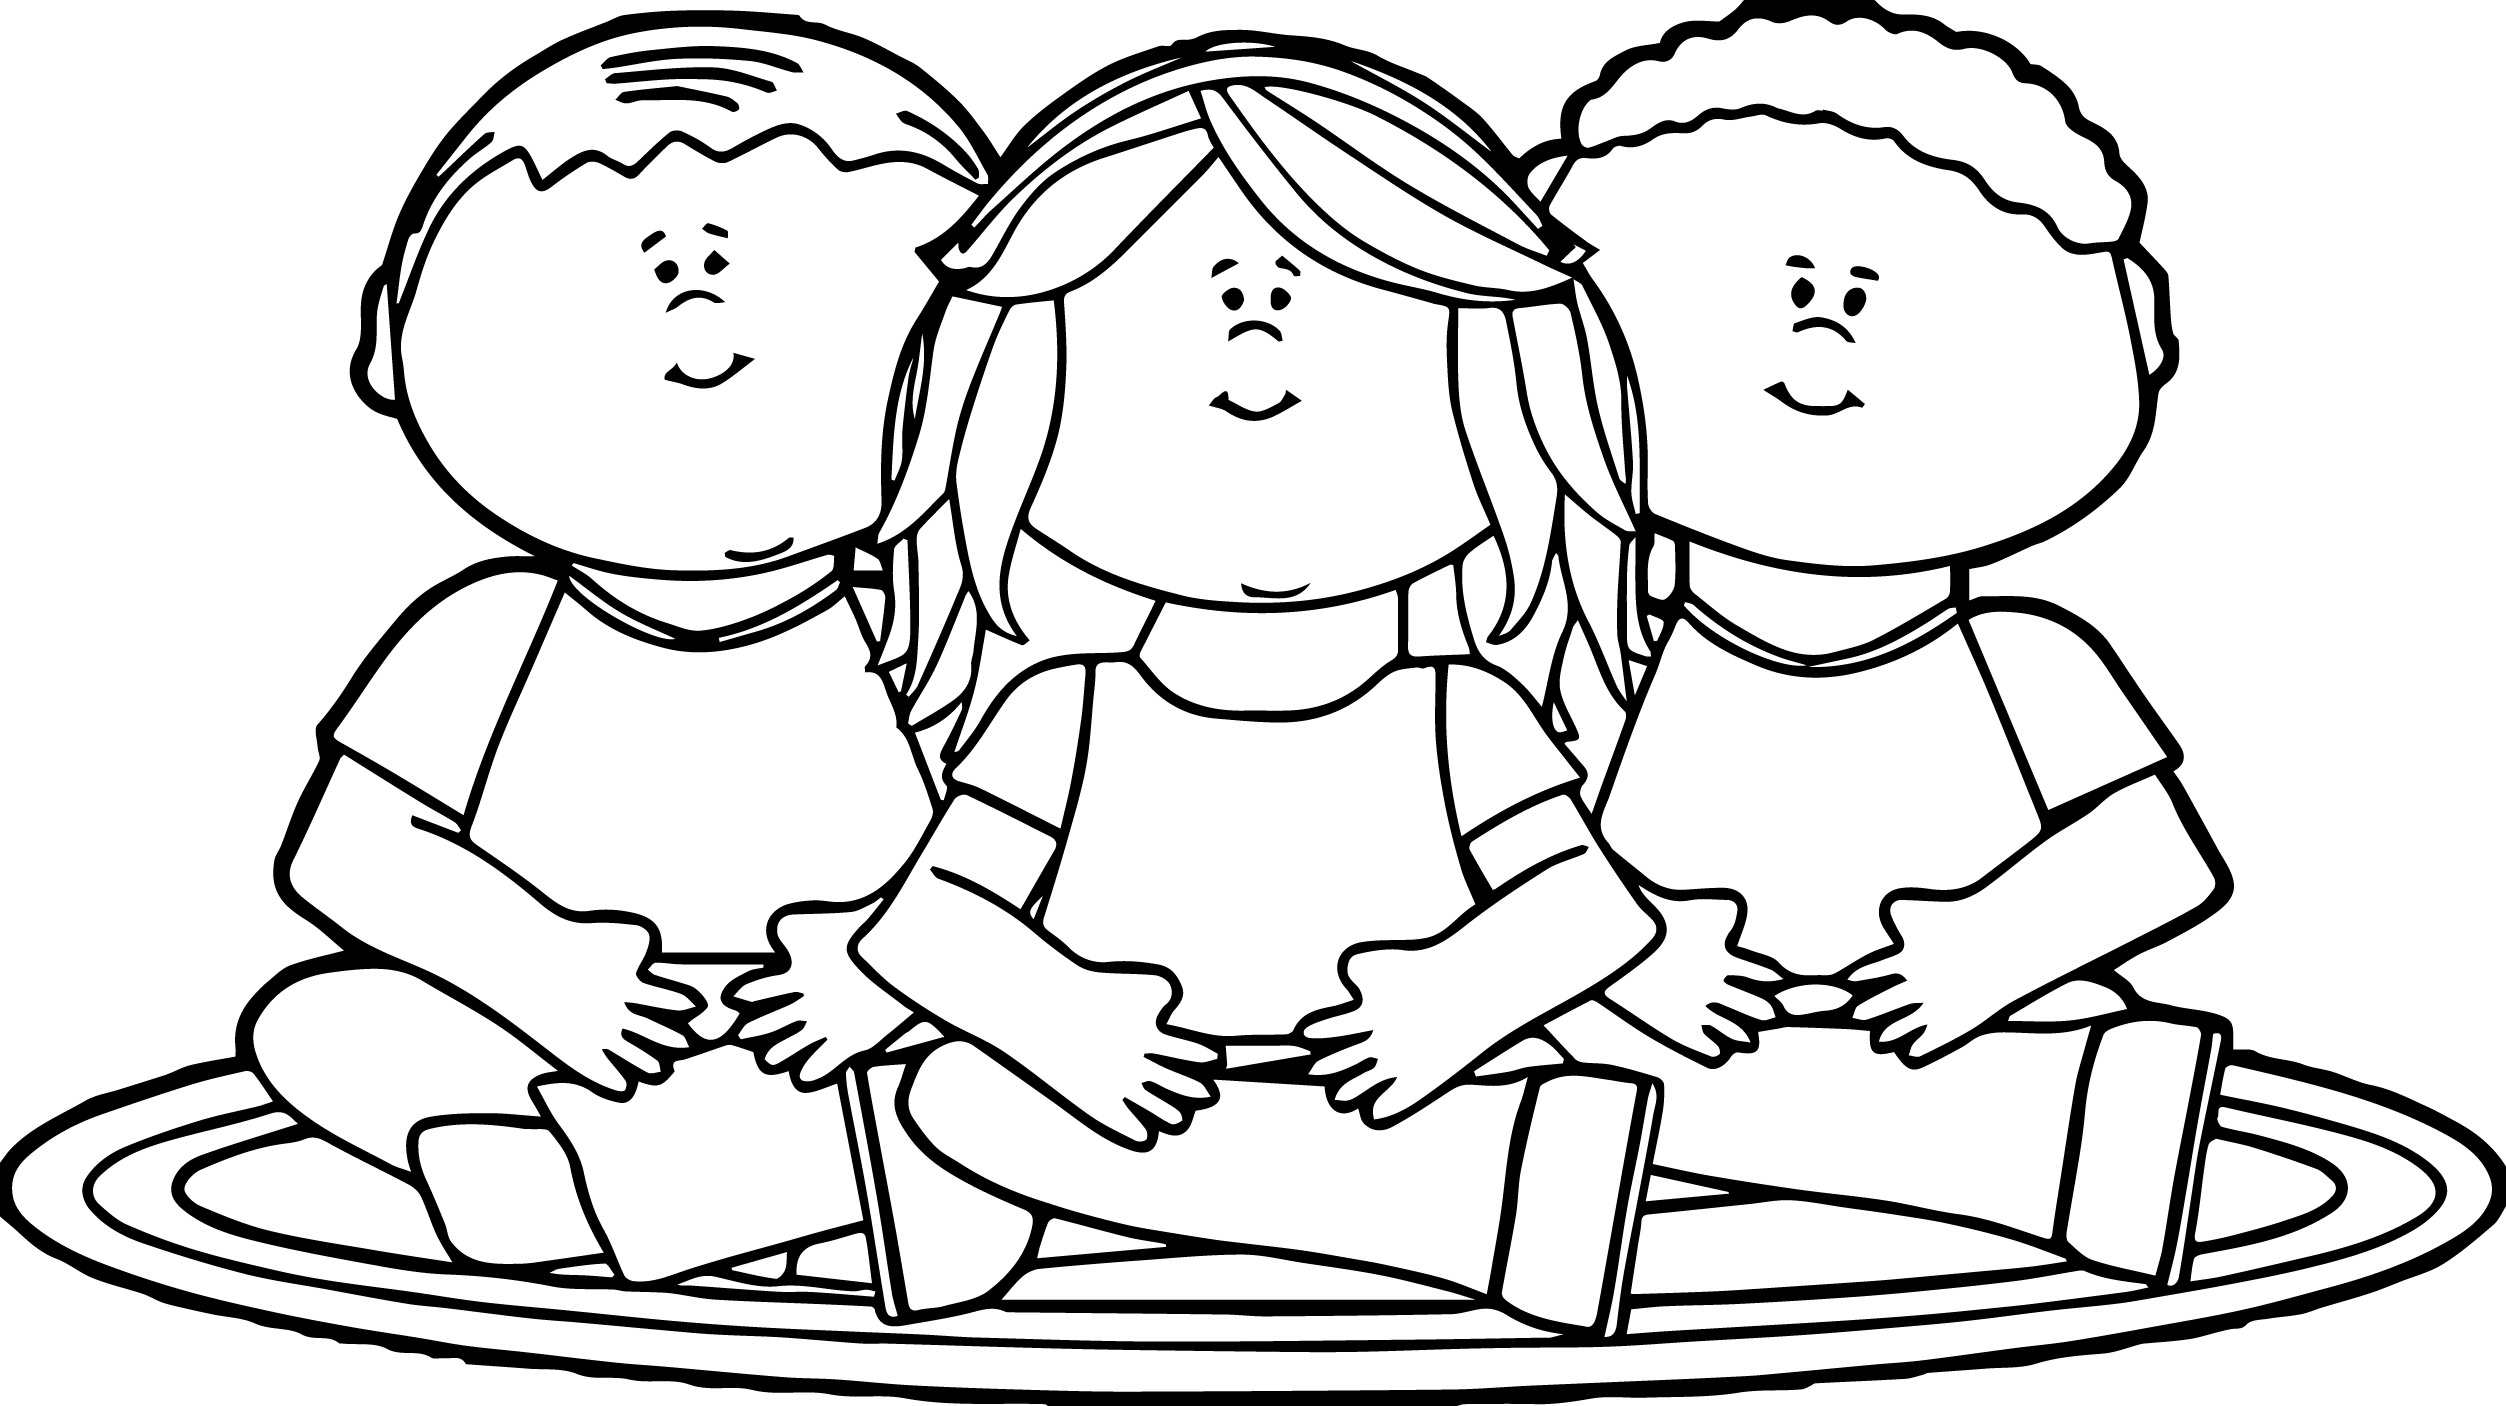 people coloring people coloring pages free download on clipartmag people coloring